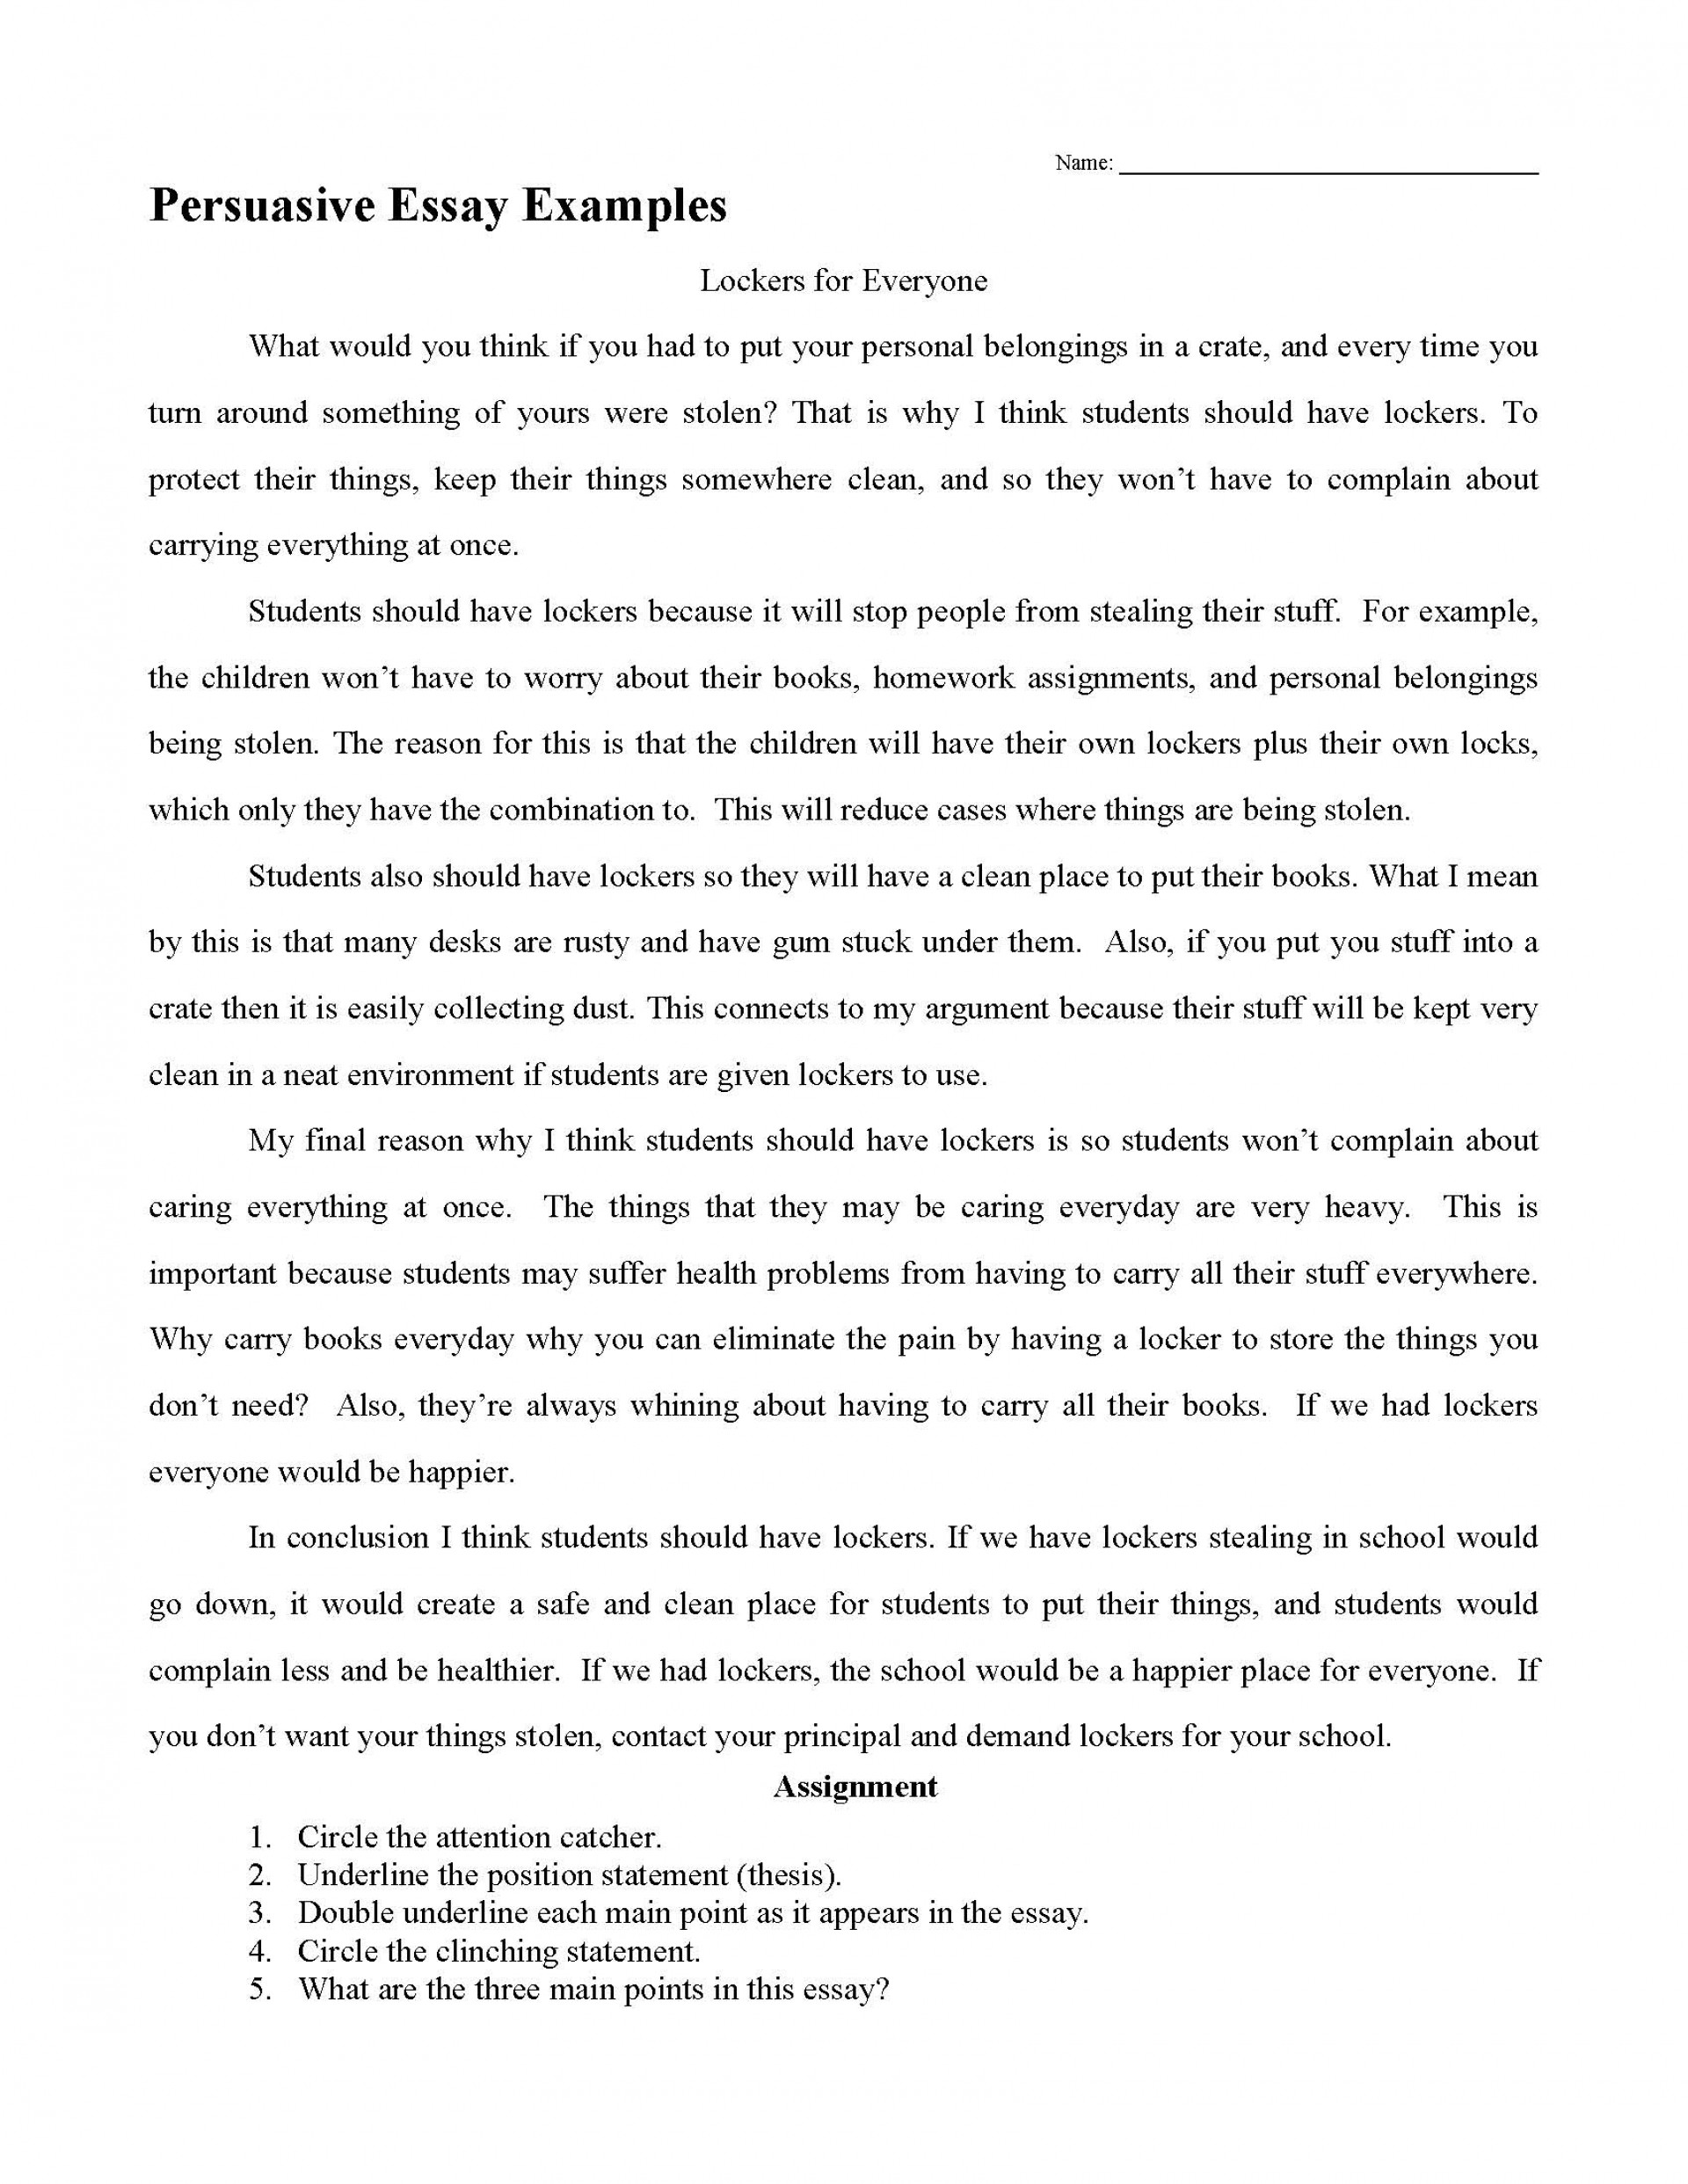 001 Persuasive Essays Impressive Essay Examples For Middle School Staar 1920